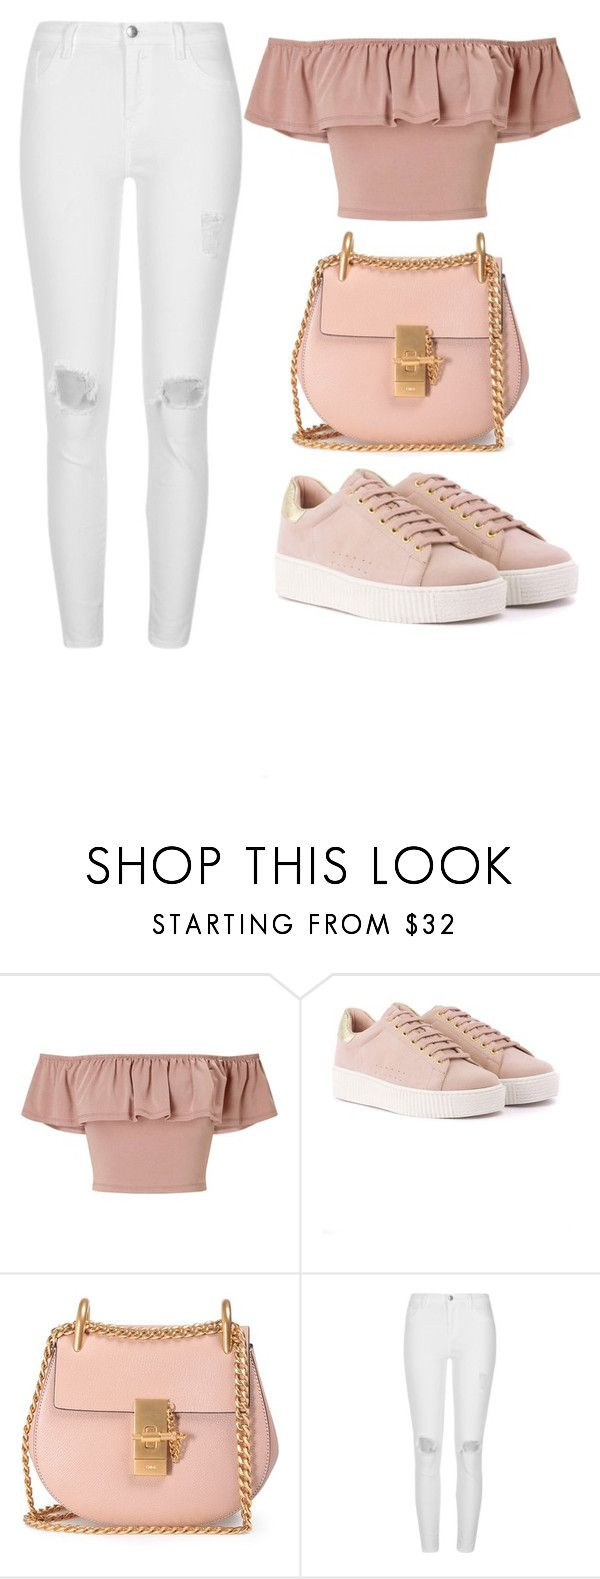 """Girly"" by tovenilsen on Polyvore featuring Miss Selfridge, Chloé and River Island"